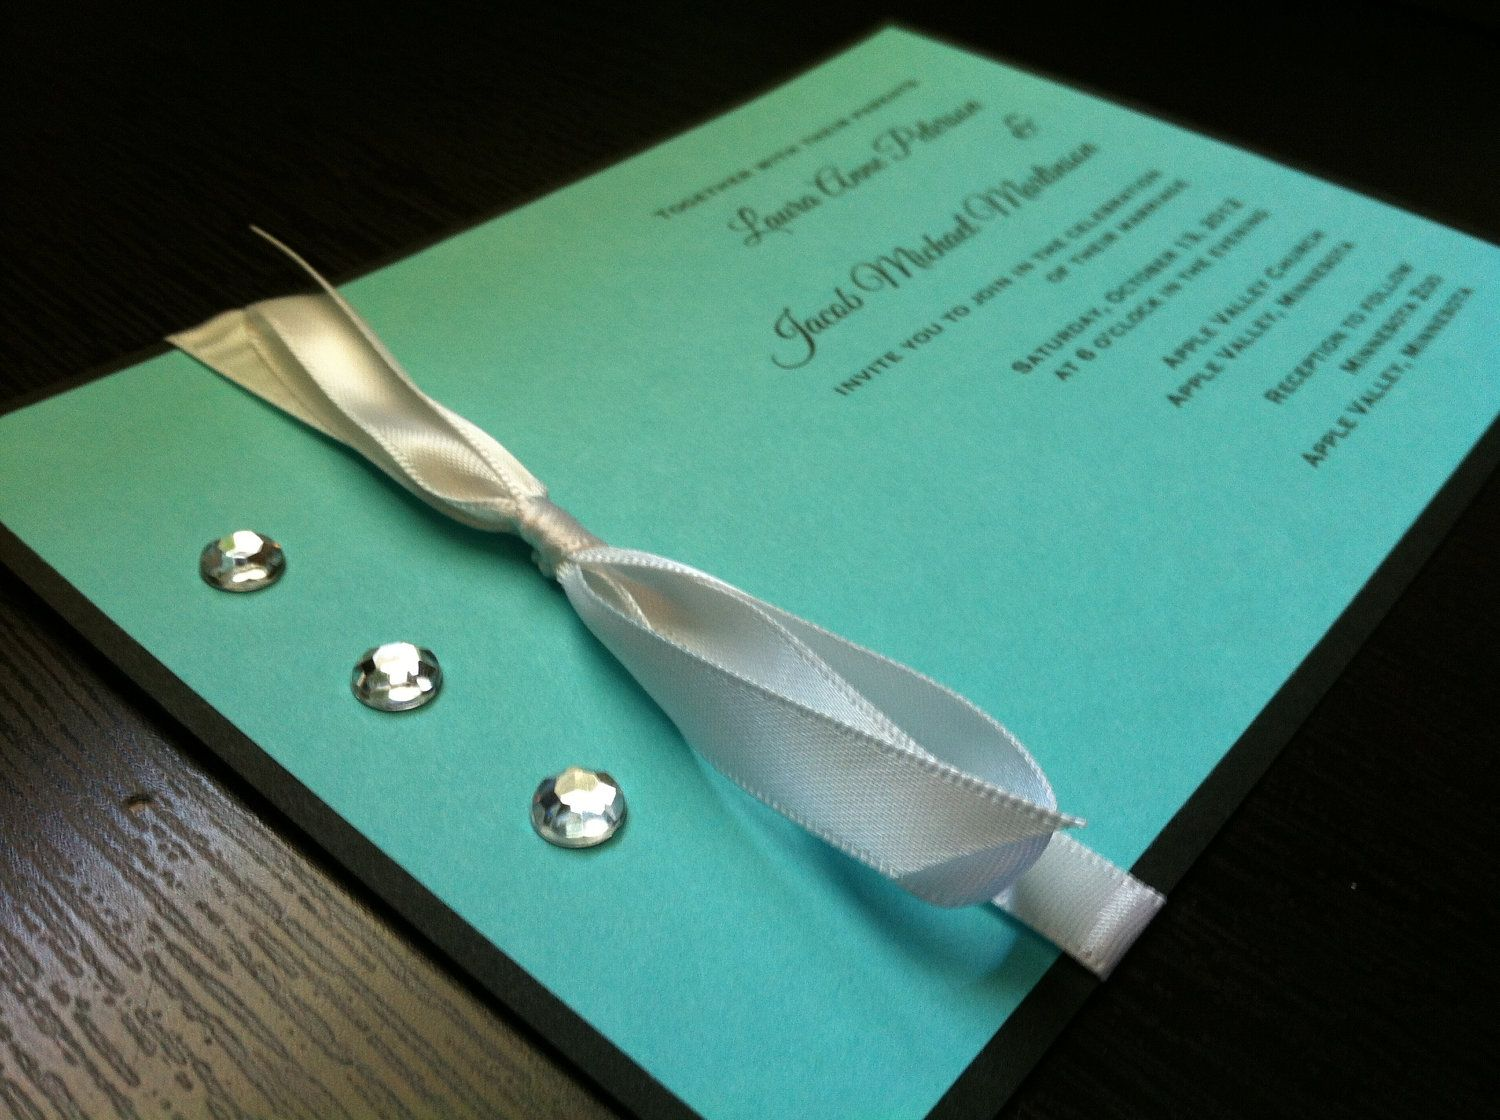 Tiffany Blue and black wedding invitations with white bow and bling ...